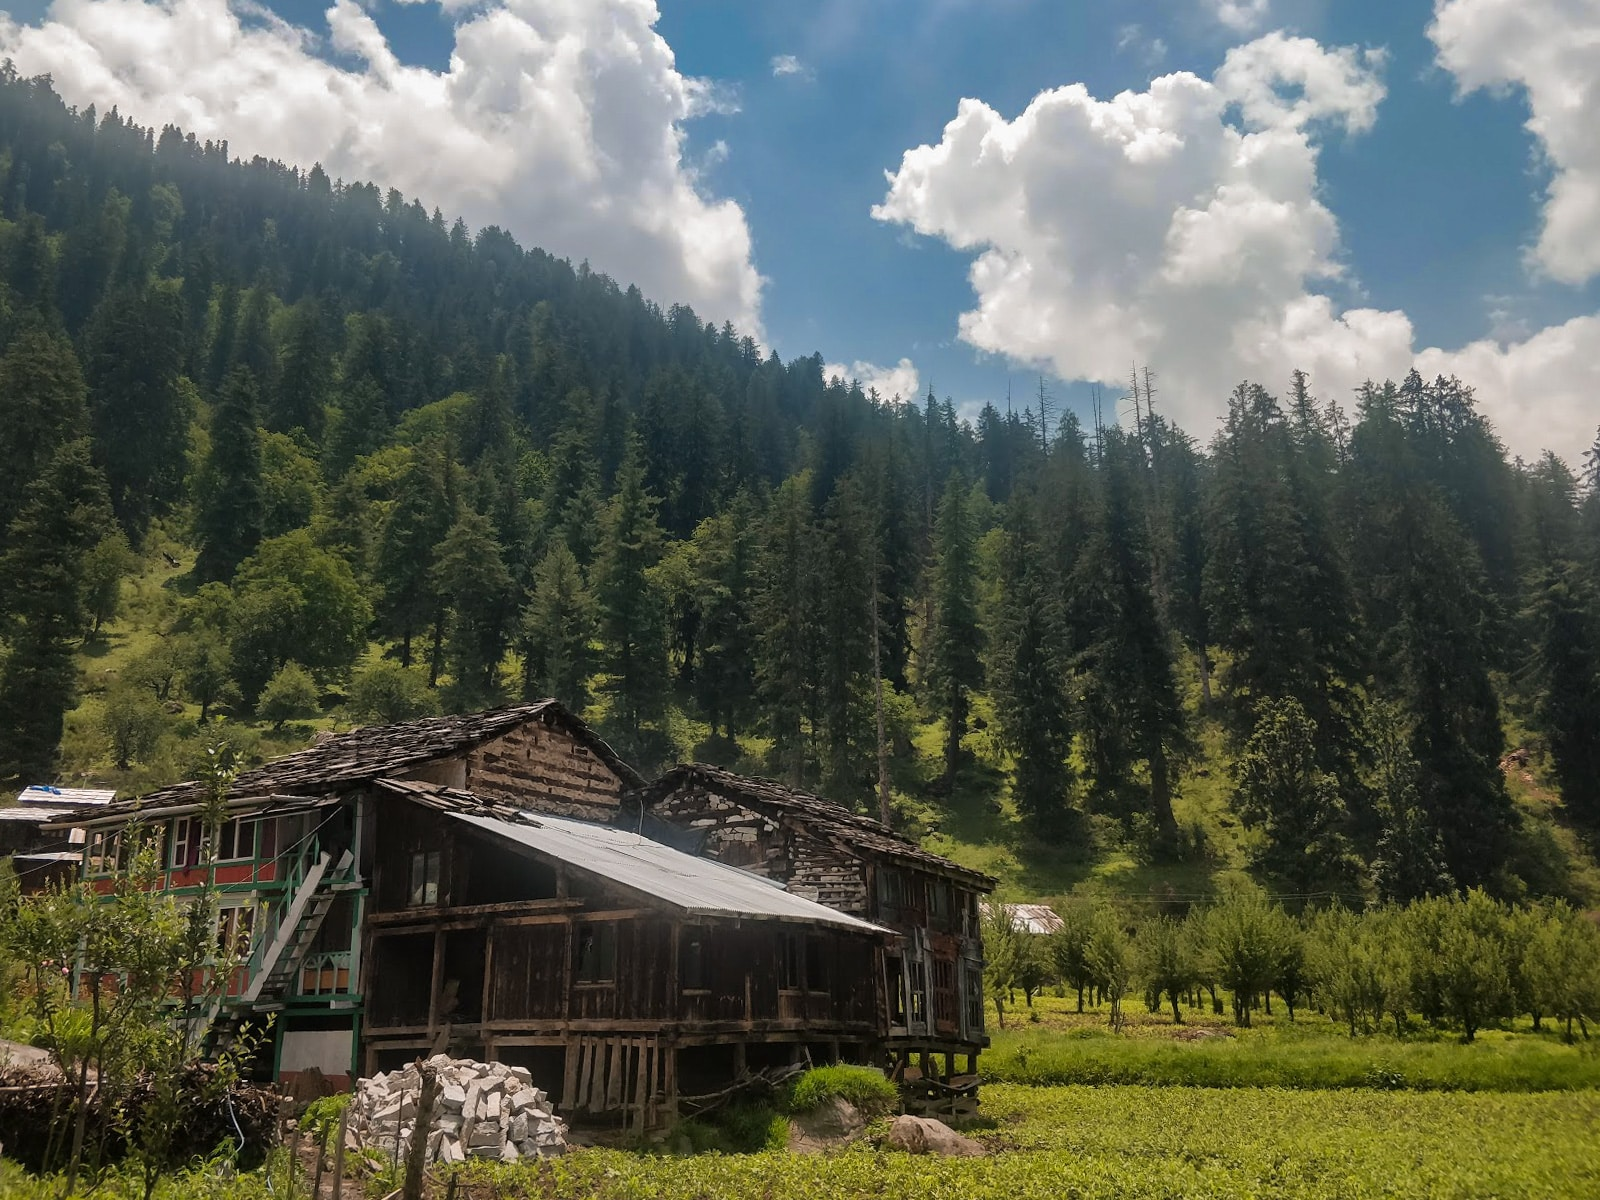 A wooden home in green pastures surrounded by pine forest in Kalga Village, Parvati Valley, Himachal Pradesh state, India